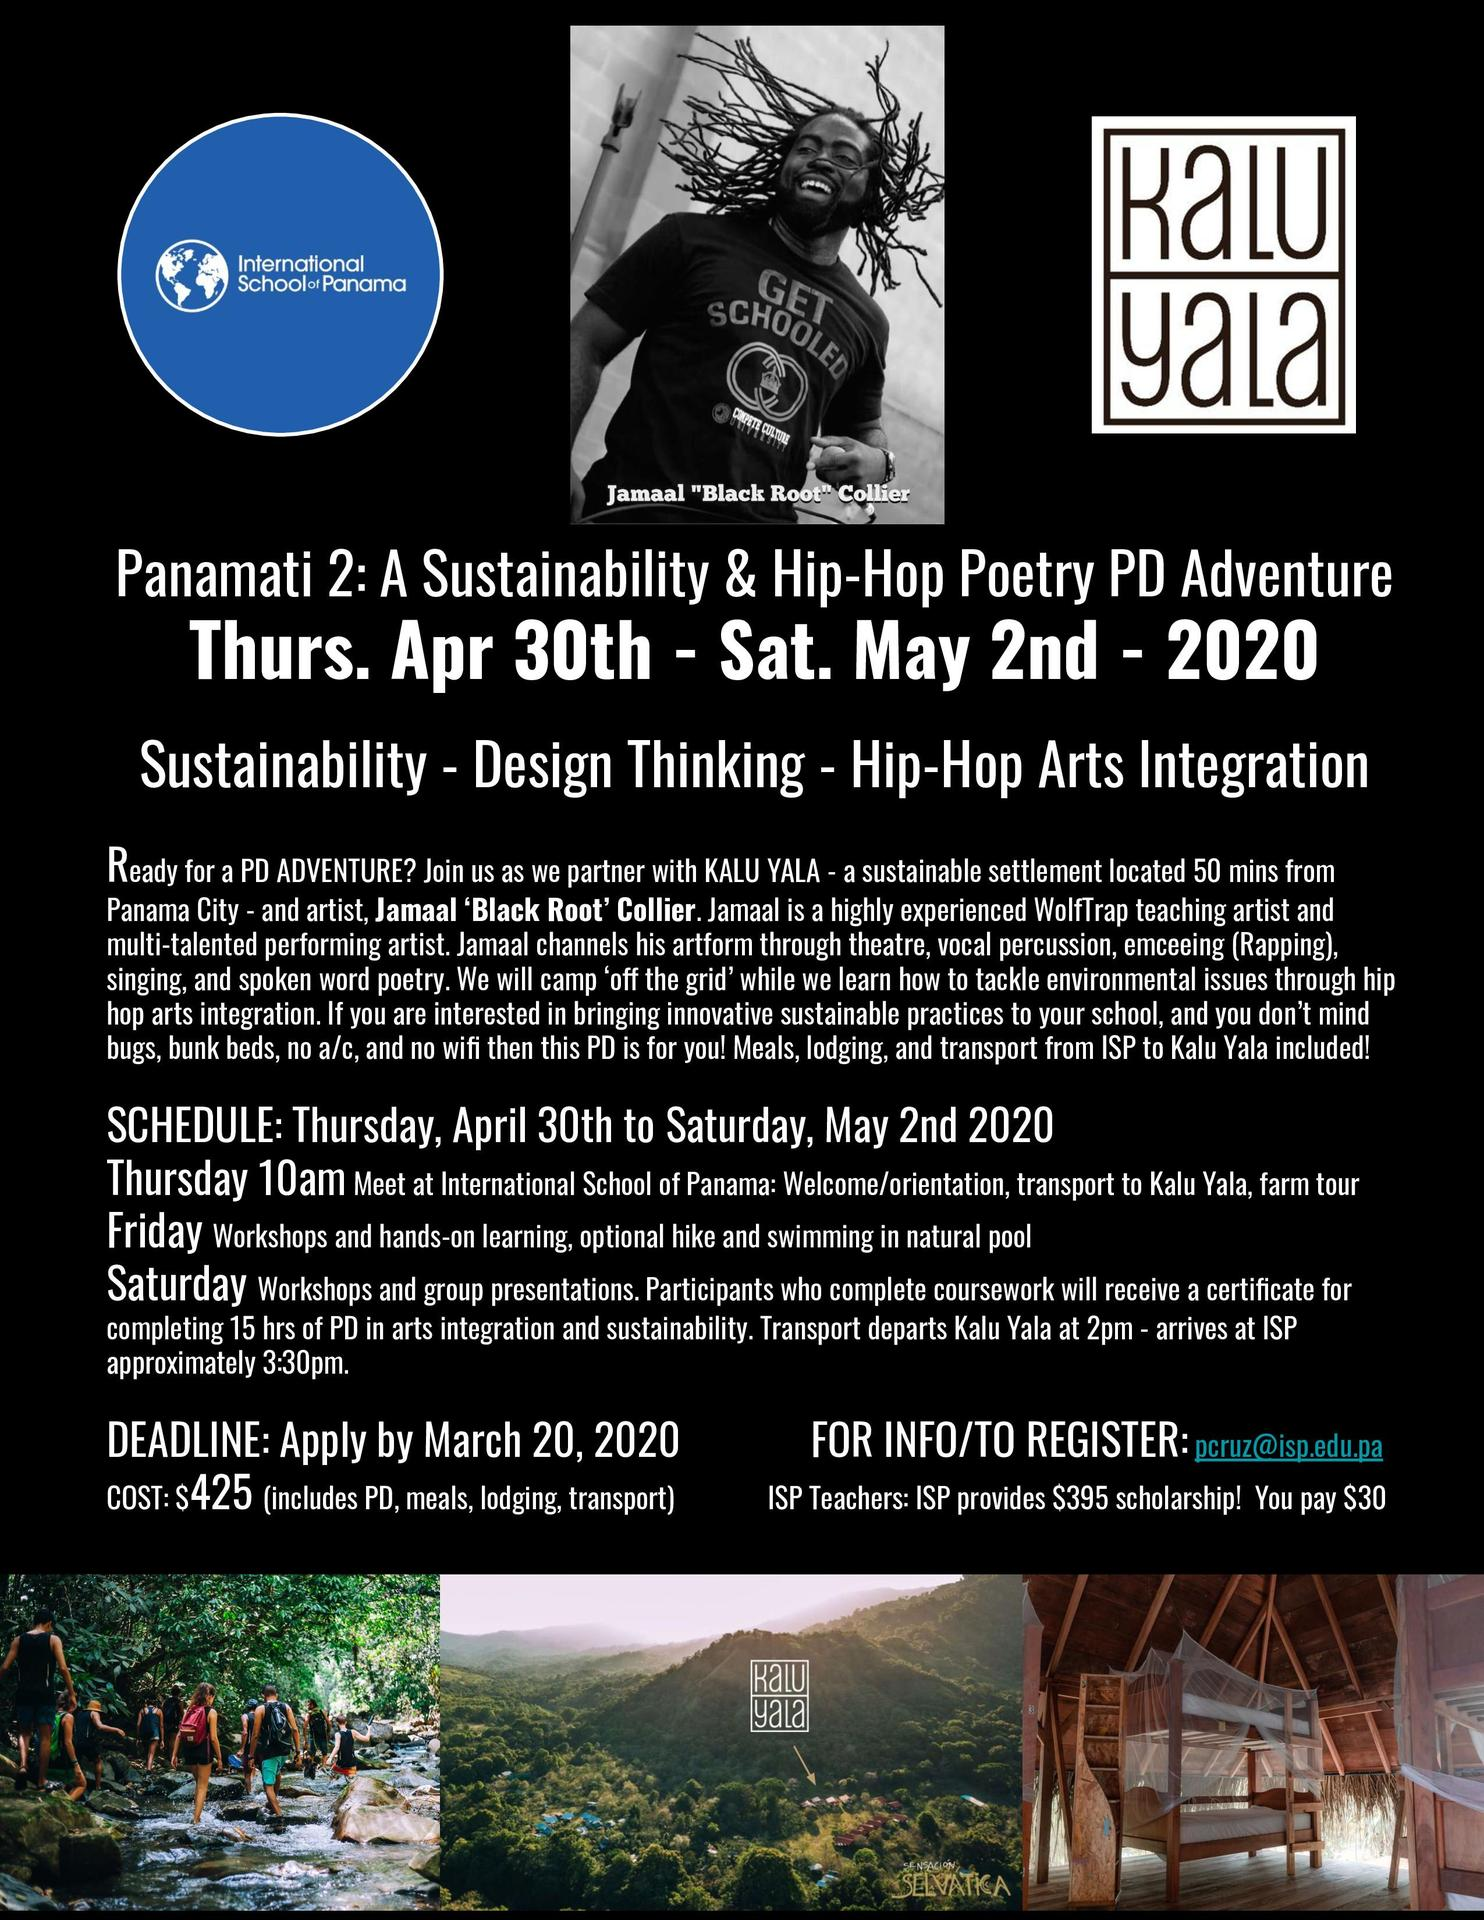 Panamati 2: A Sustainability & Hip-Hop Poetry PD Adventure